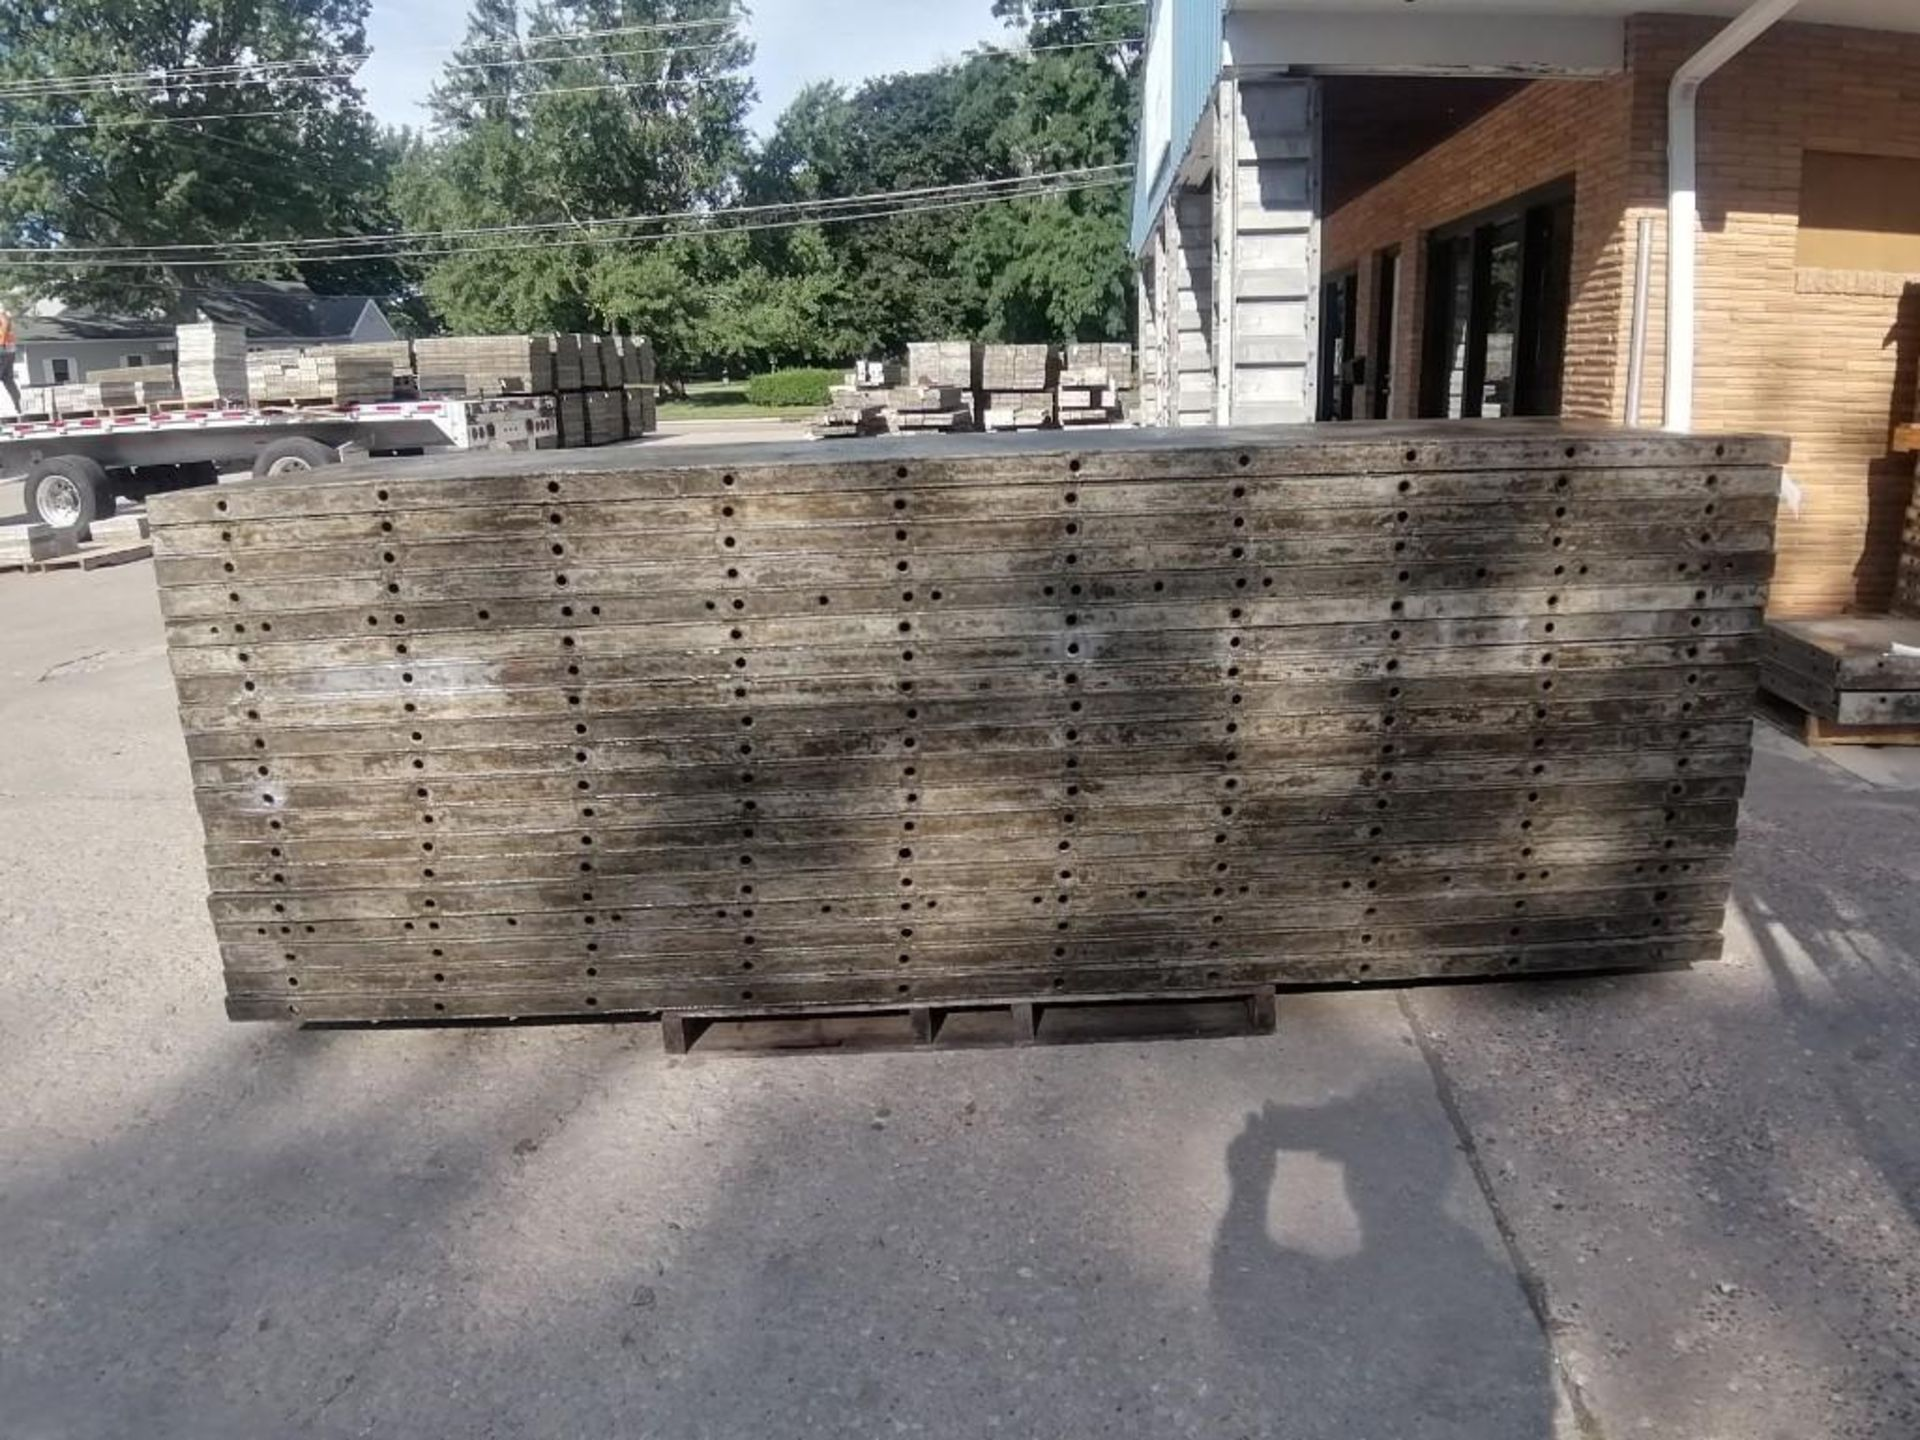 Lot 128 - (19) 3' x 10' Wall-Ties Aluminum Concrete Forms, Smooth. Located at 301 E Henry Street, Mt.